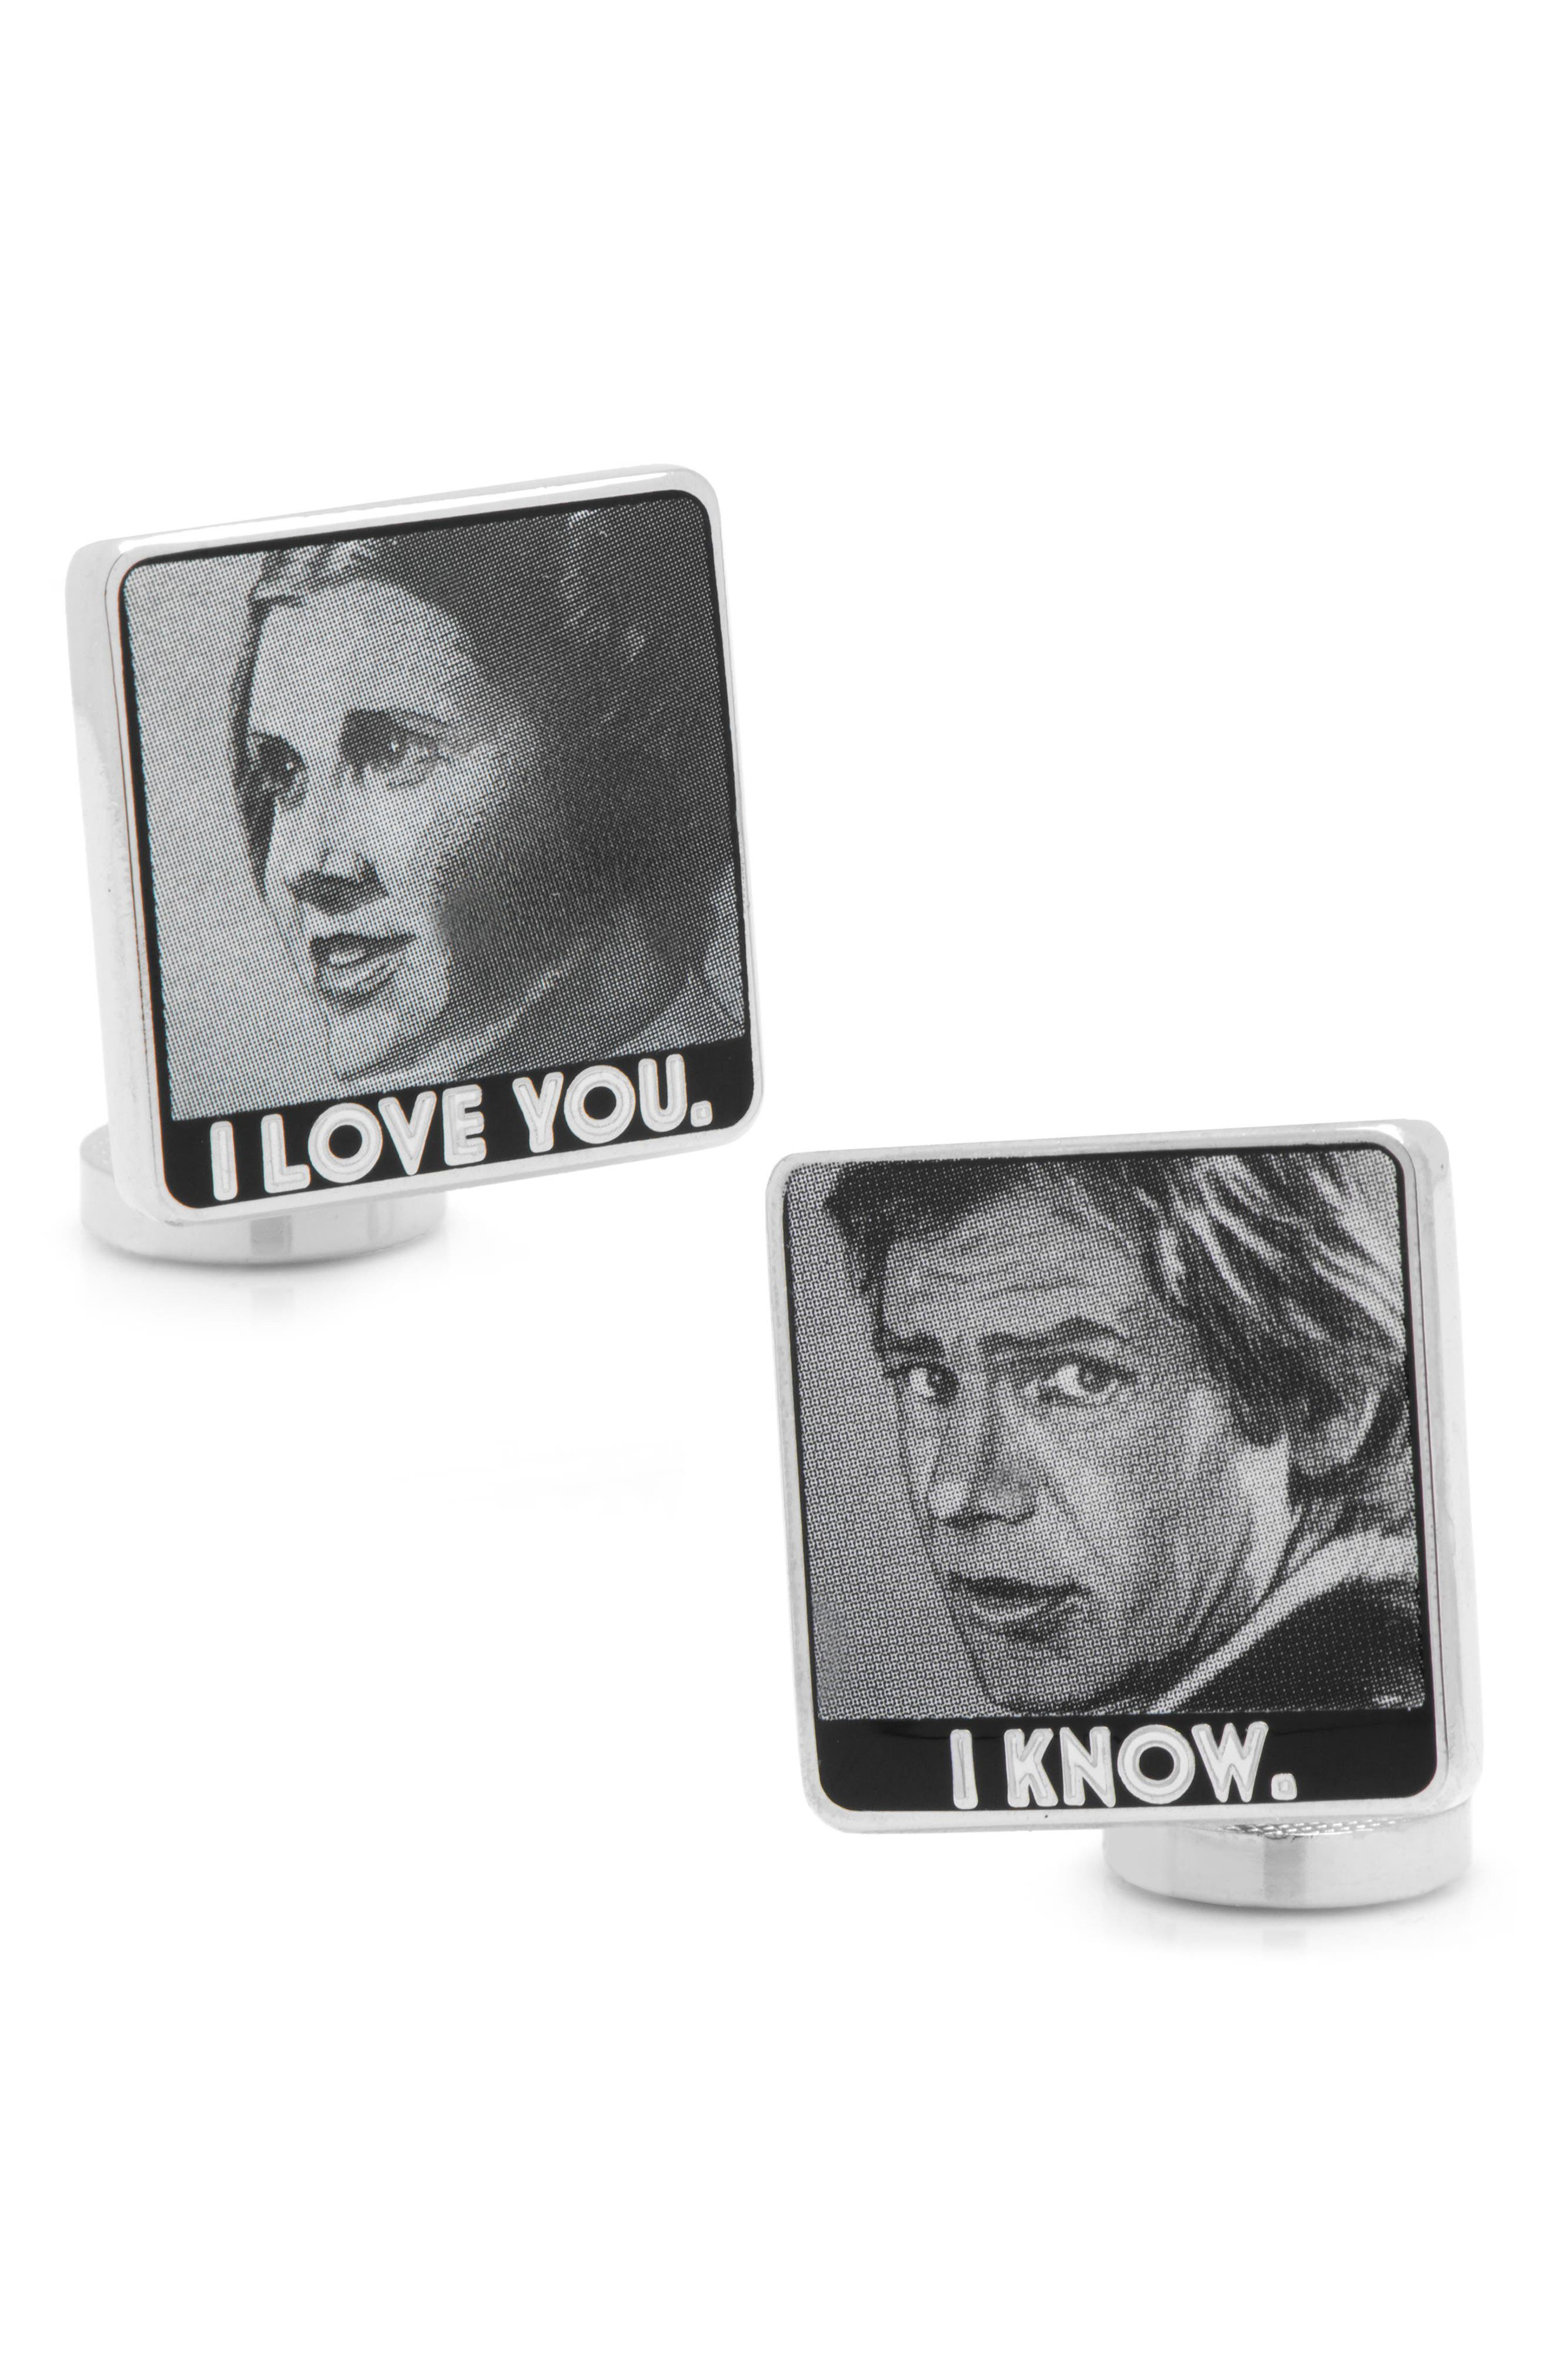 I Love You/I Know Cuff Links,                             Main thumbnail 1, color,                             Grey/ White